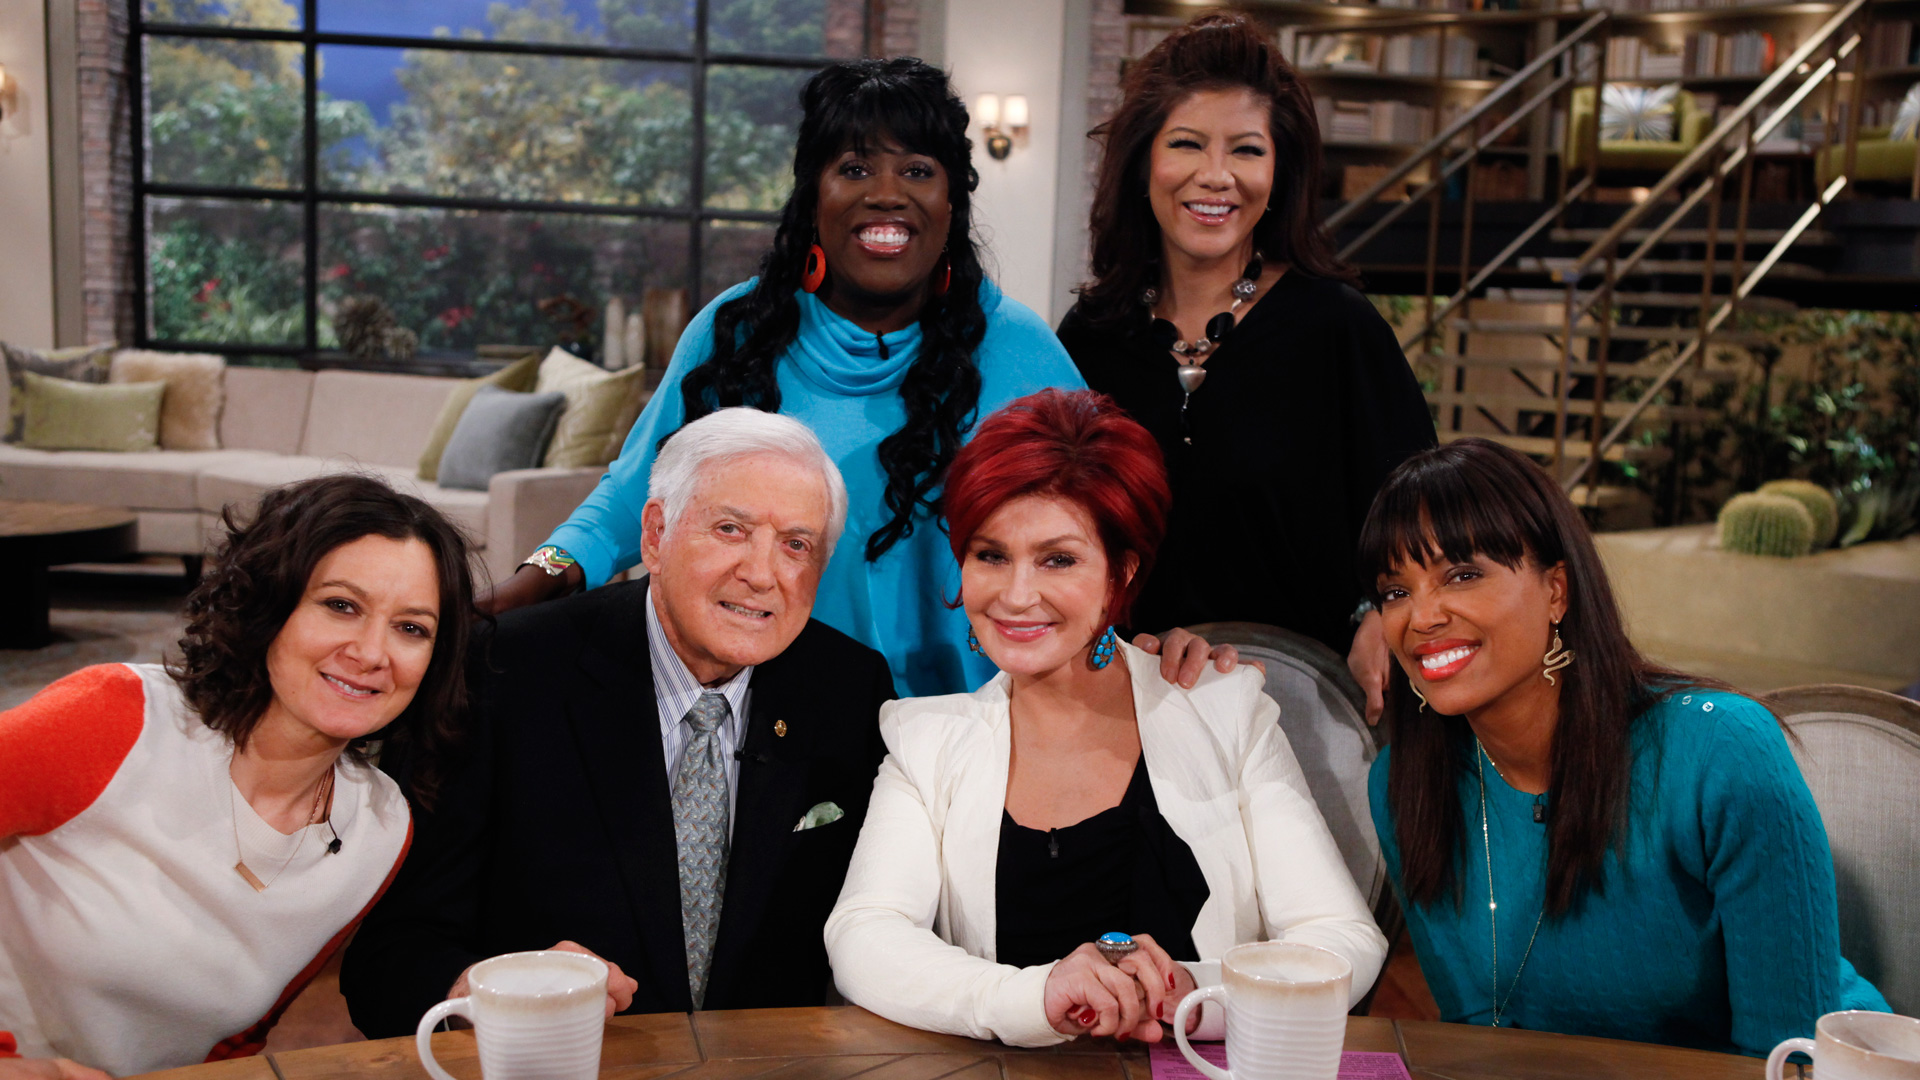 Monty was a guest on The Talk.